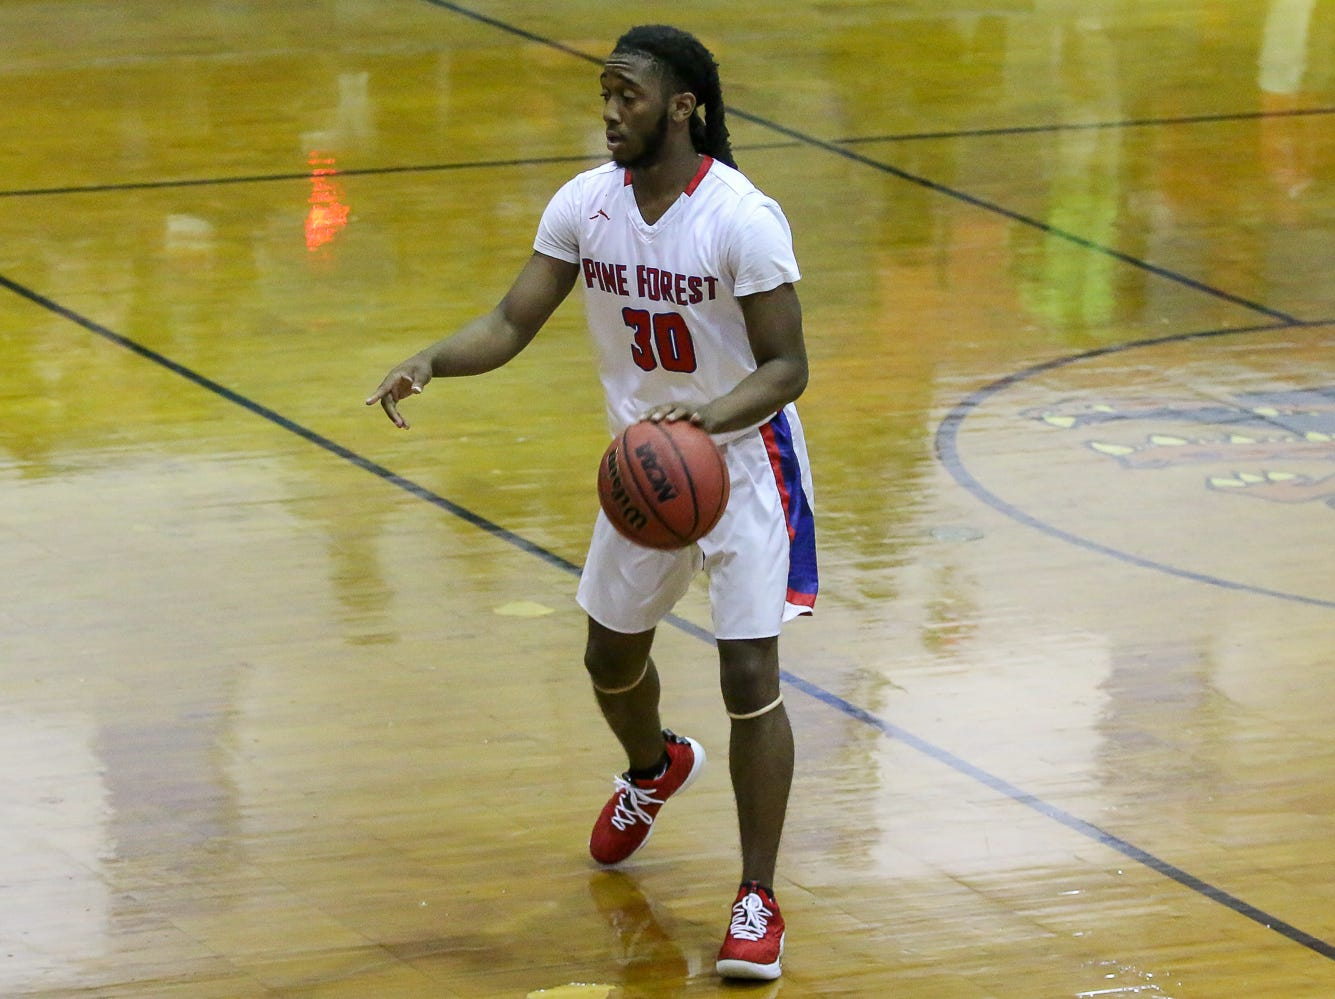 Pine Forest's Fred Lett (30) waits for his teammates to get into position against Pensacola Catholic in the preseason basketball jamboree at Escambia High School on Tuesday, November 20, 2018.